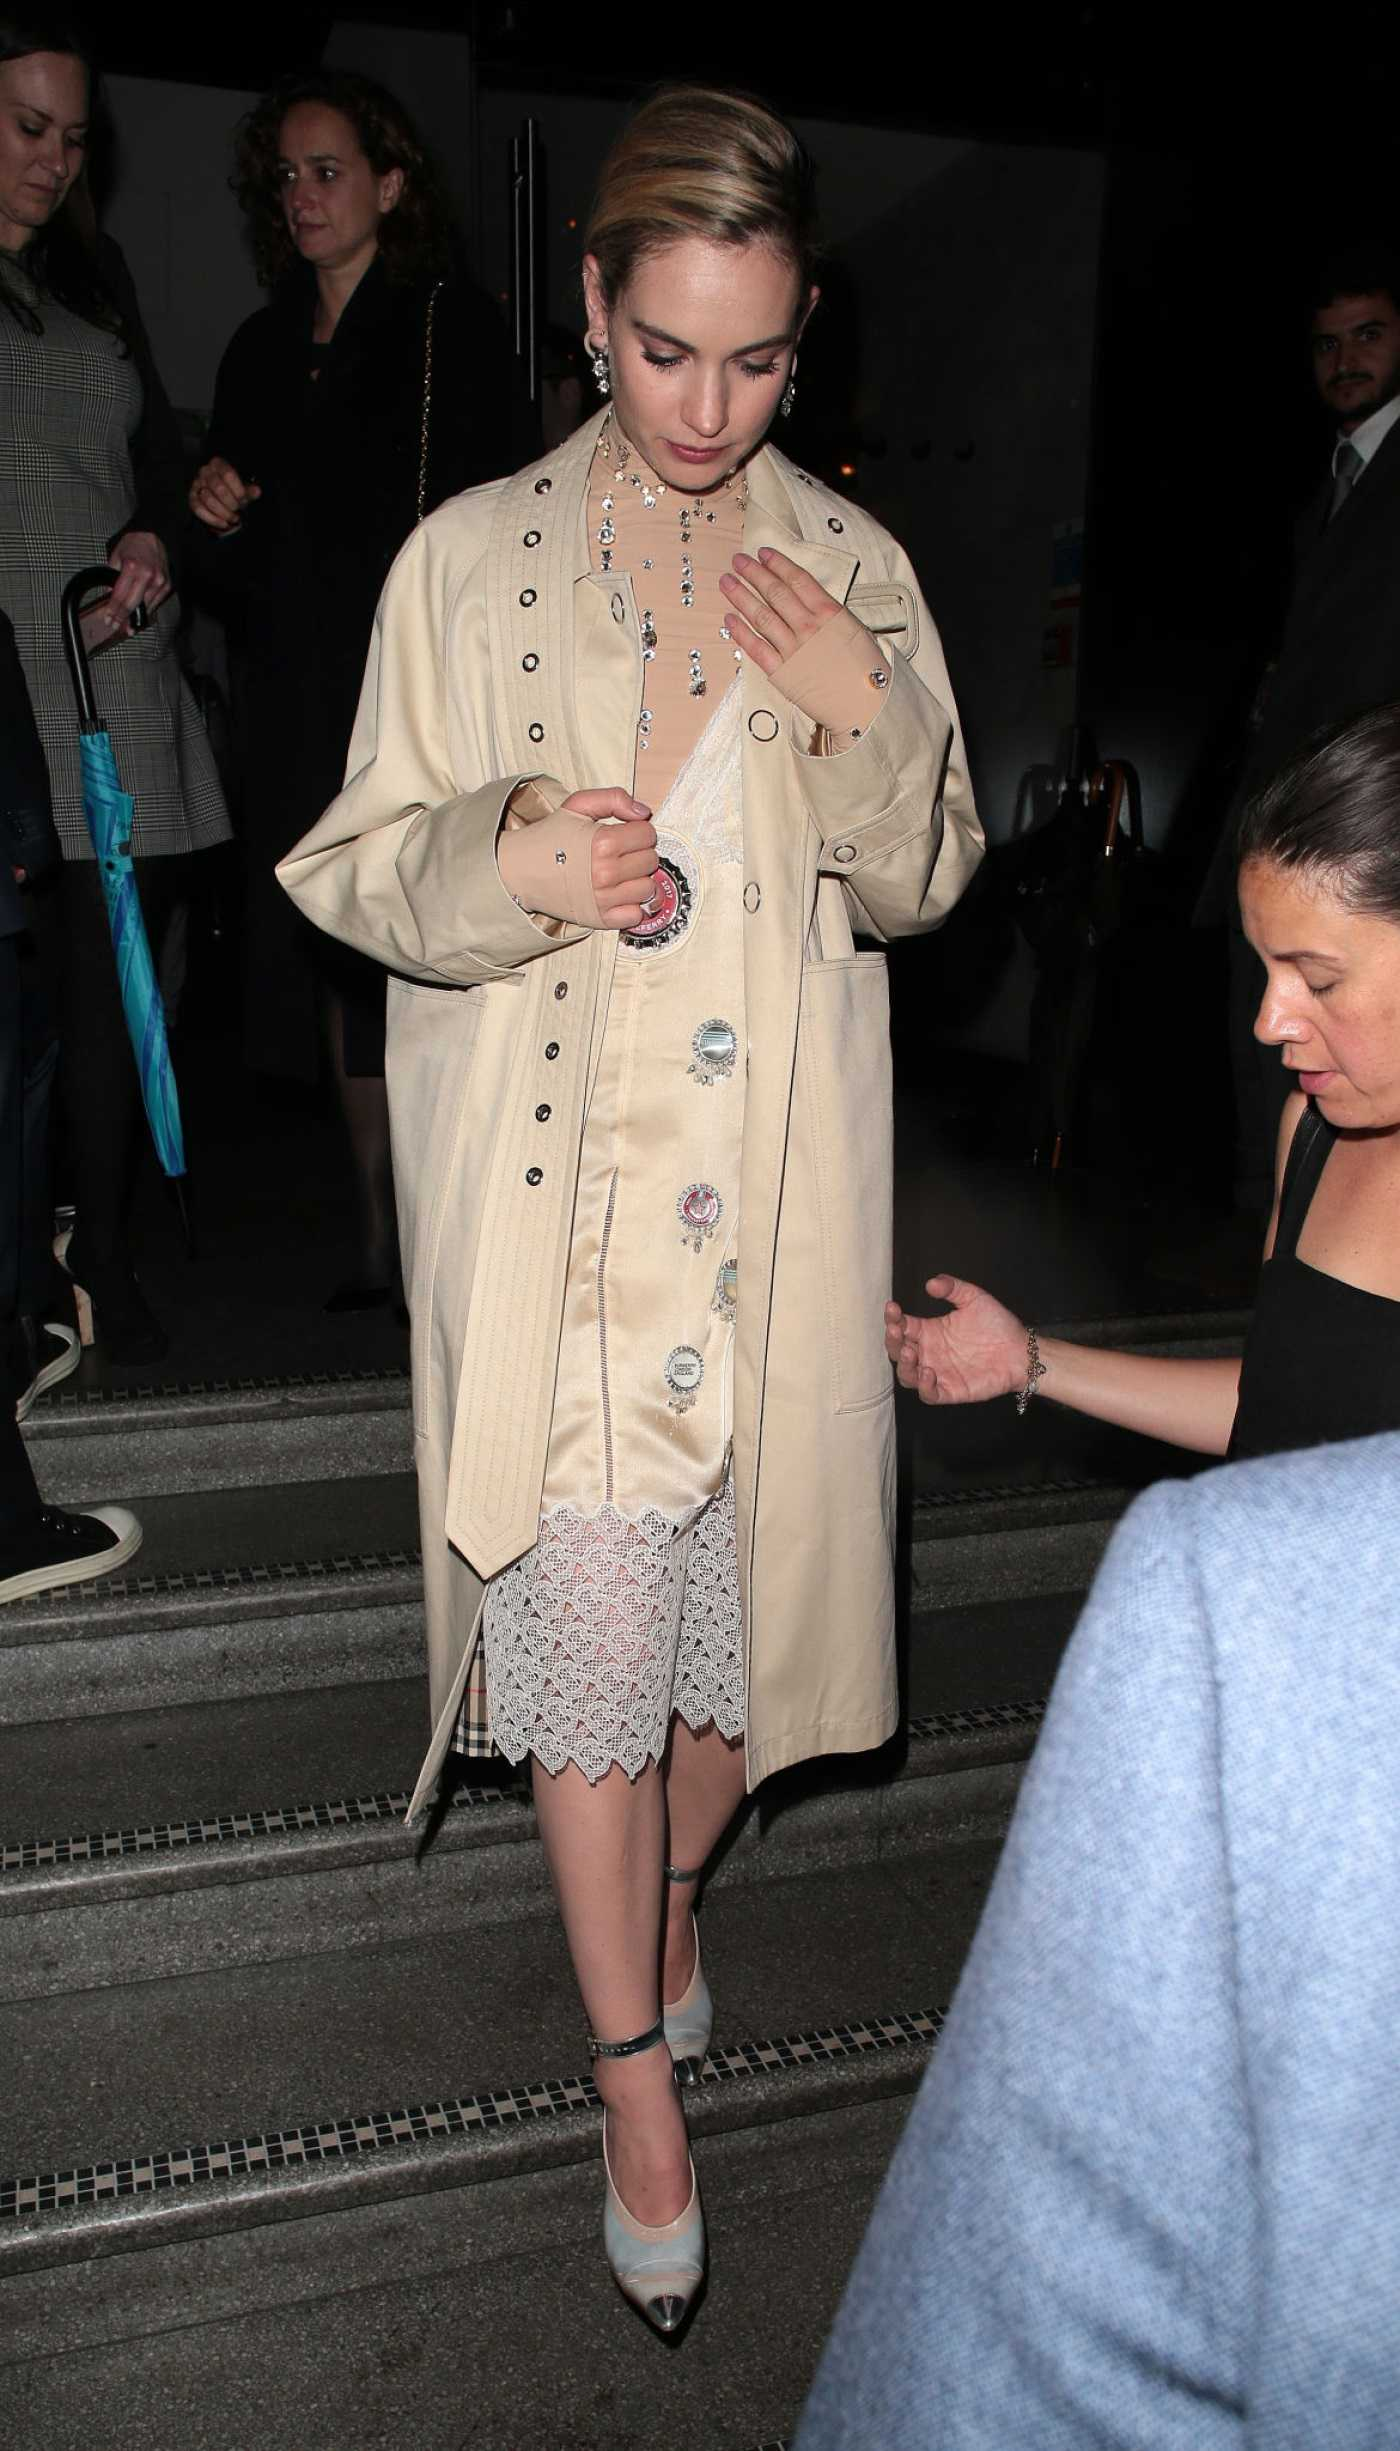 Lily James in a Beige Trench Coat Arrives at Yesterday Afterparty at 100 Wardour Street in London 06/18/2019